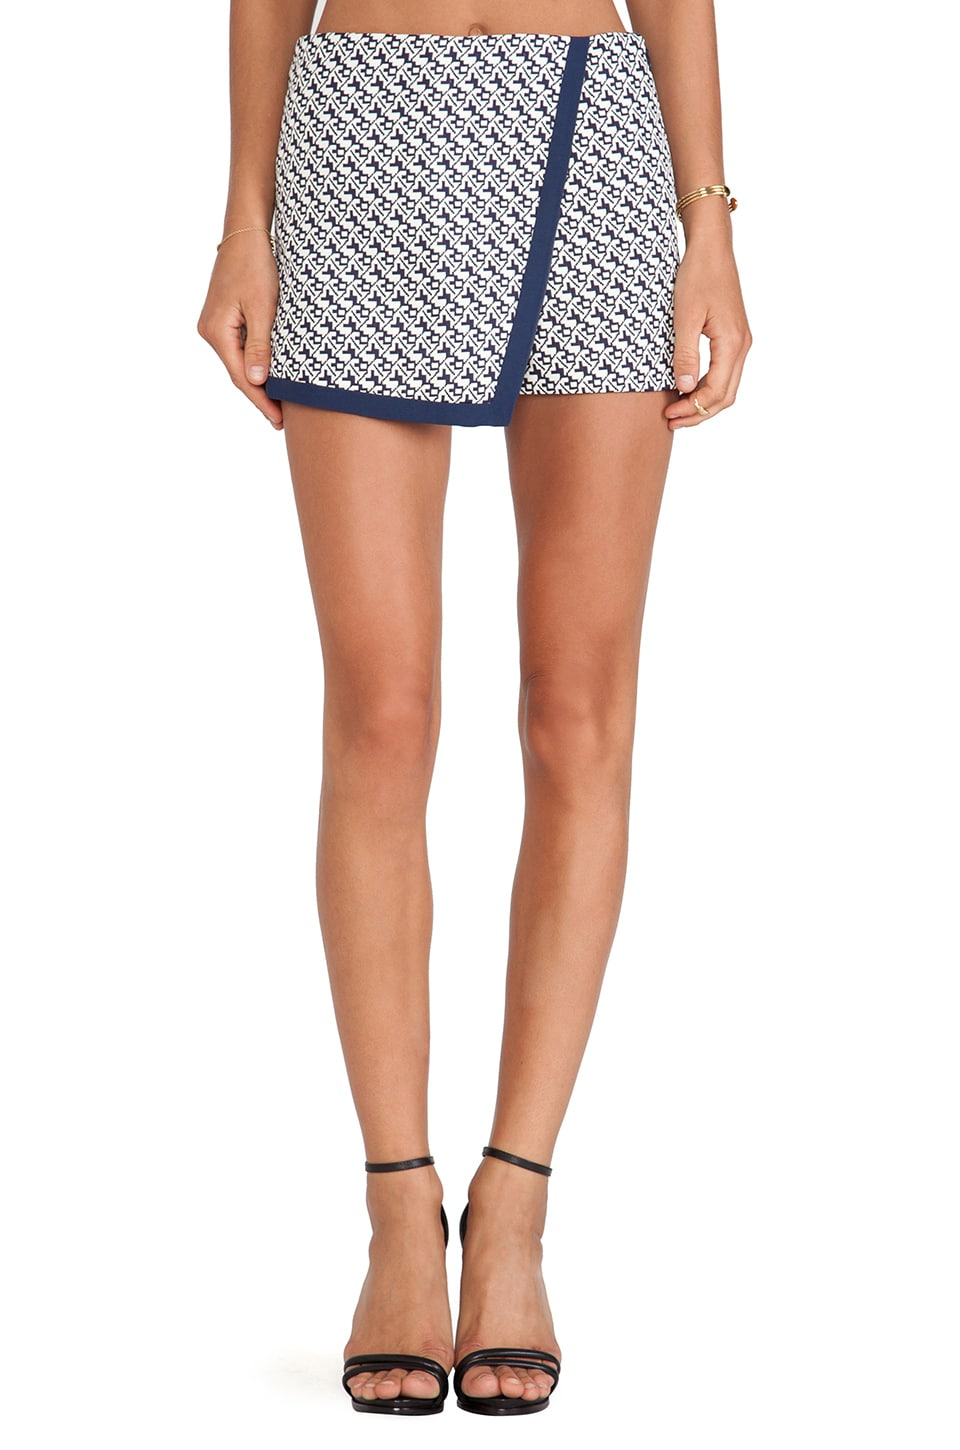 BLAQUE LABEL Mini Skirt in Navy